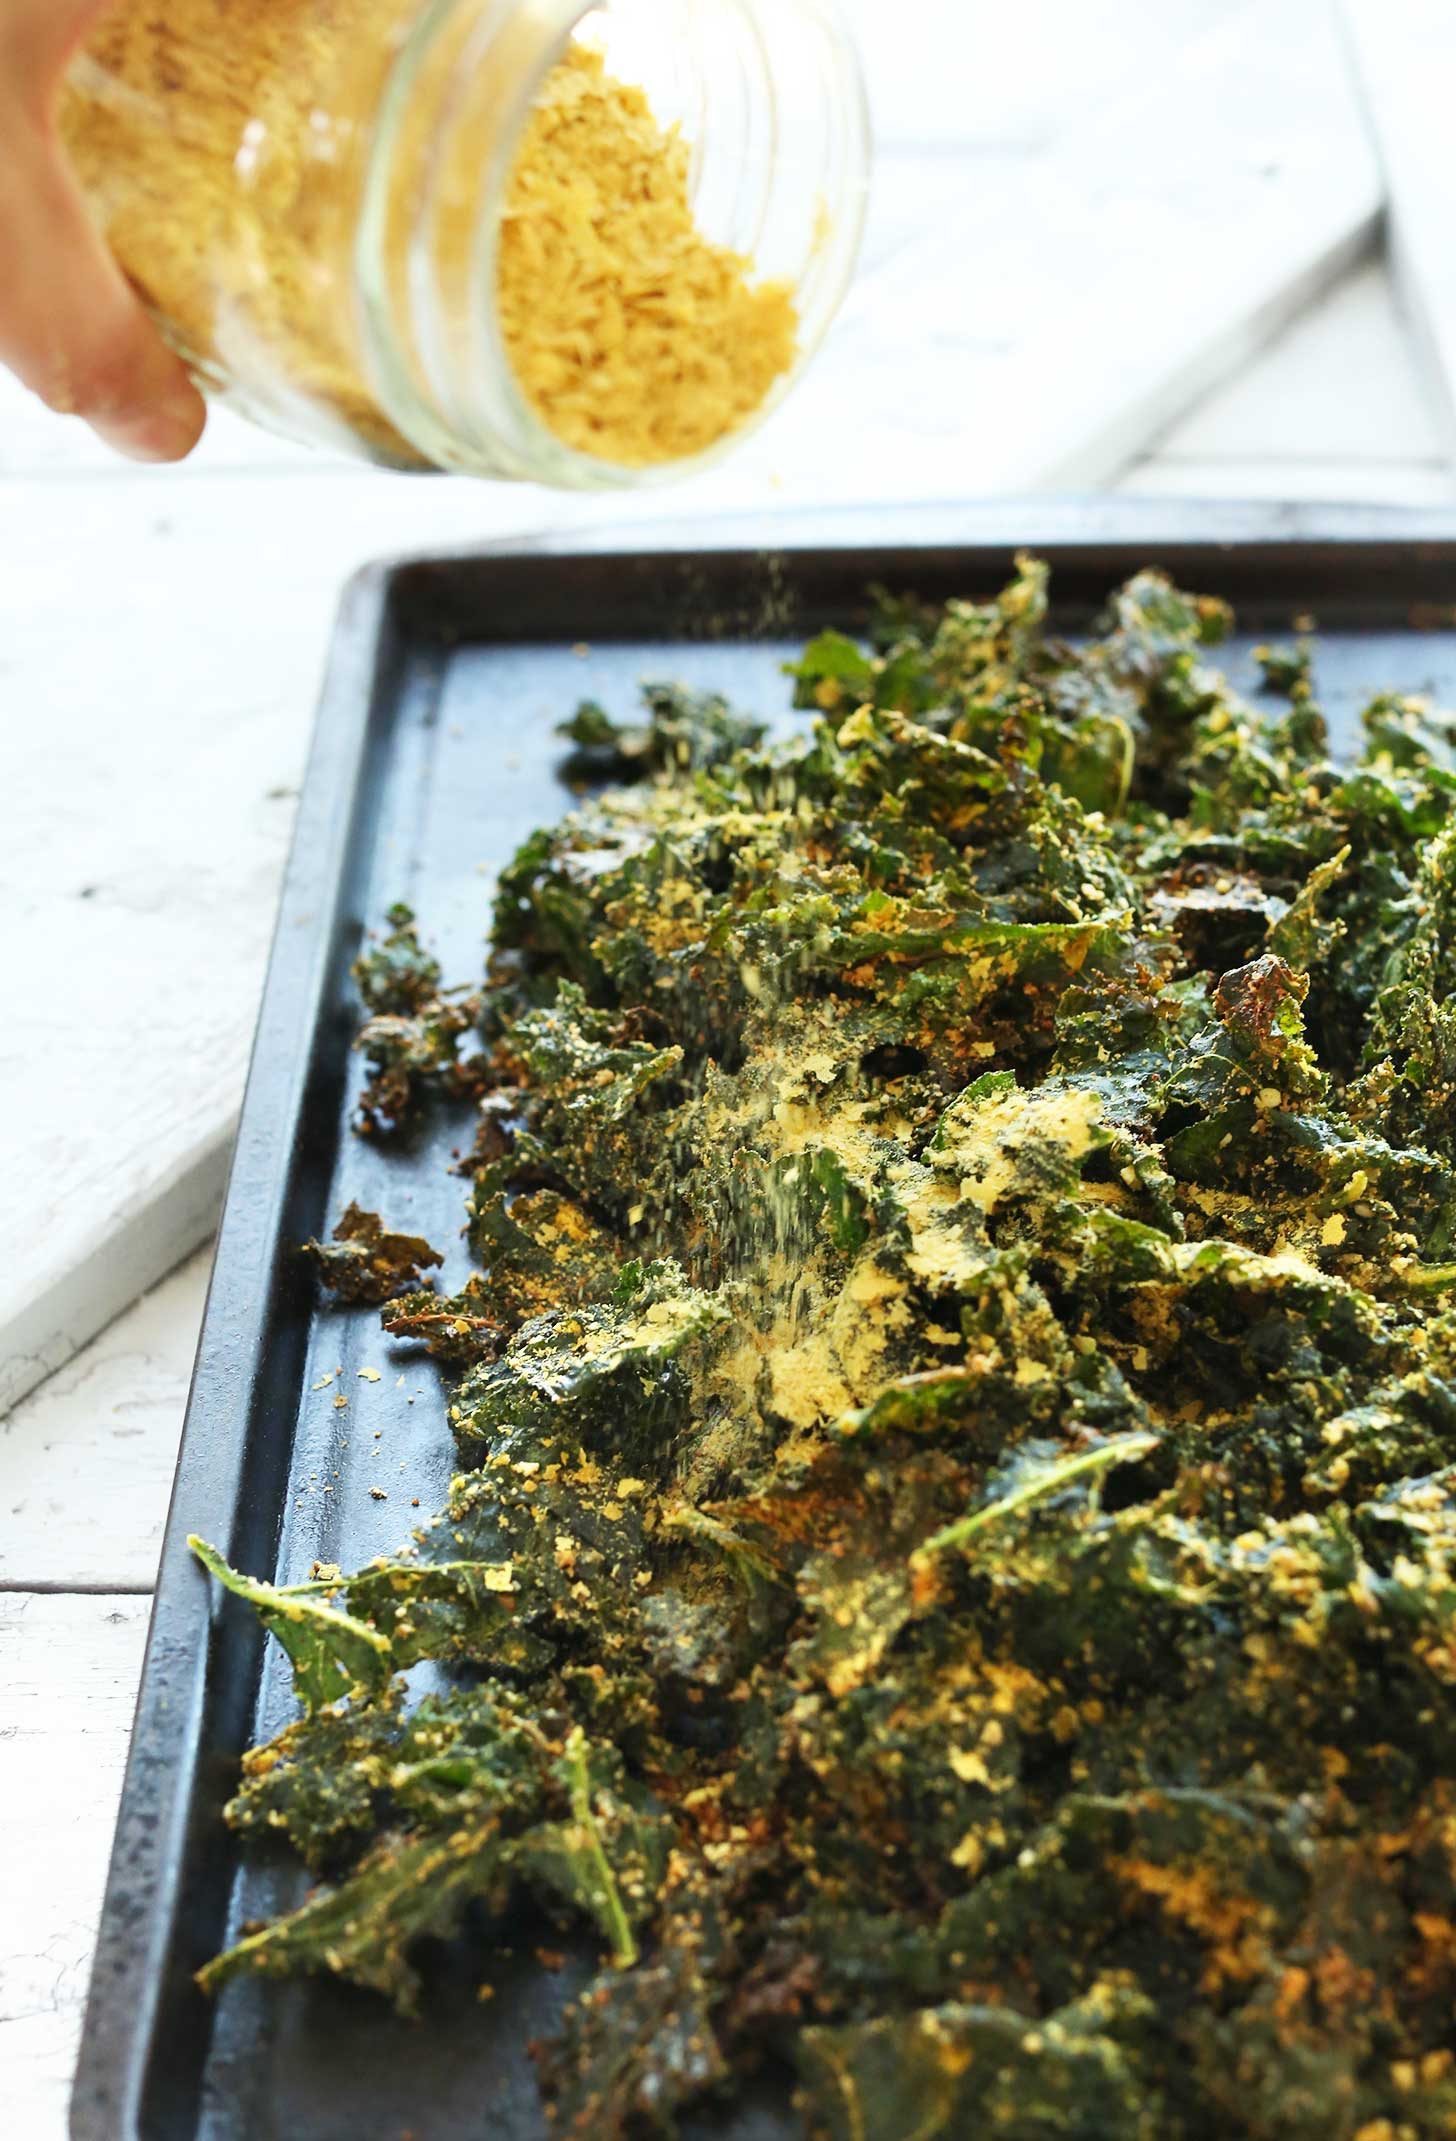 Sprinkling nutritional yeast onto kale chips for a delicious vegan snack recipe